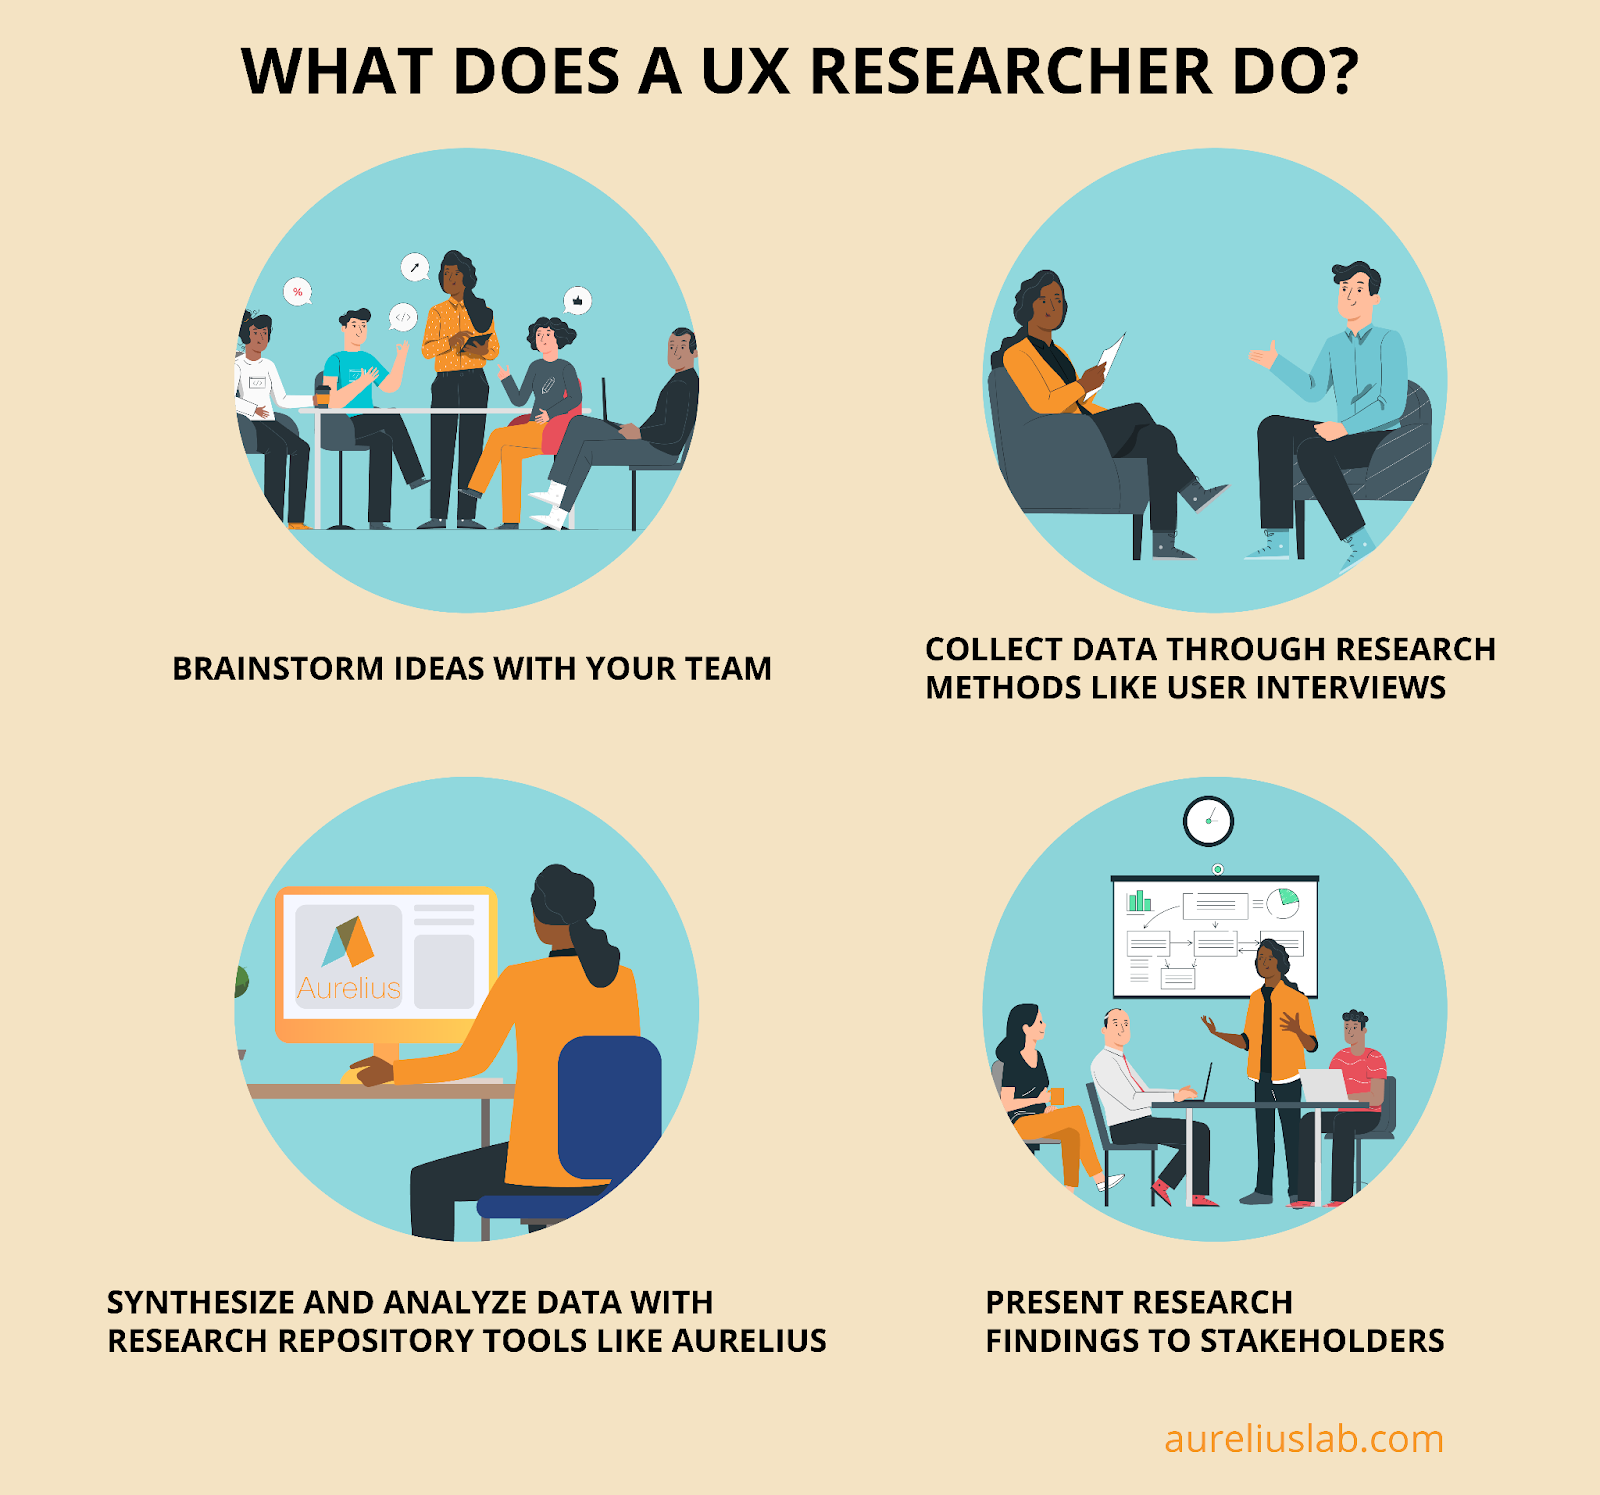 What does a UX researcher do